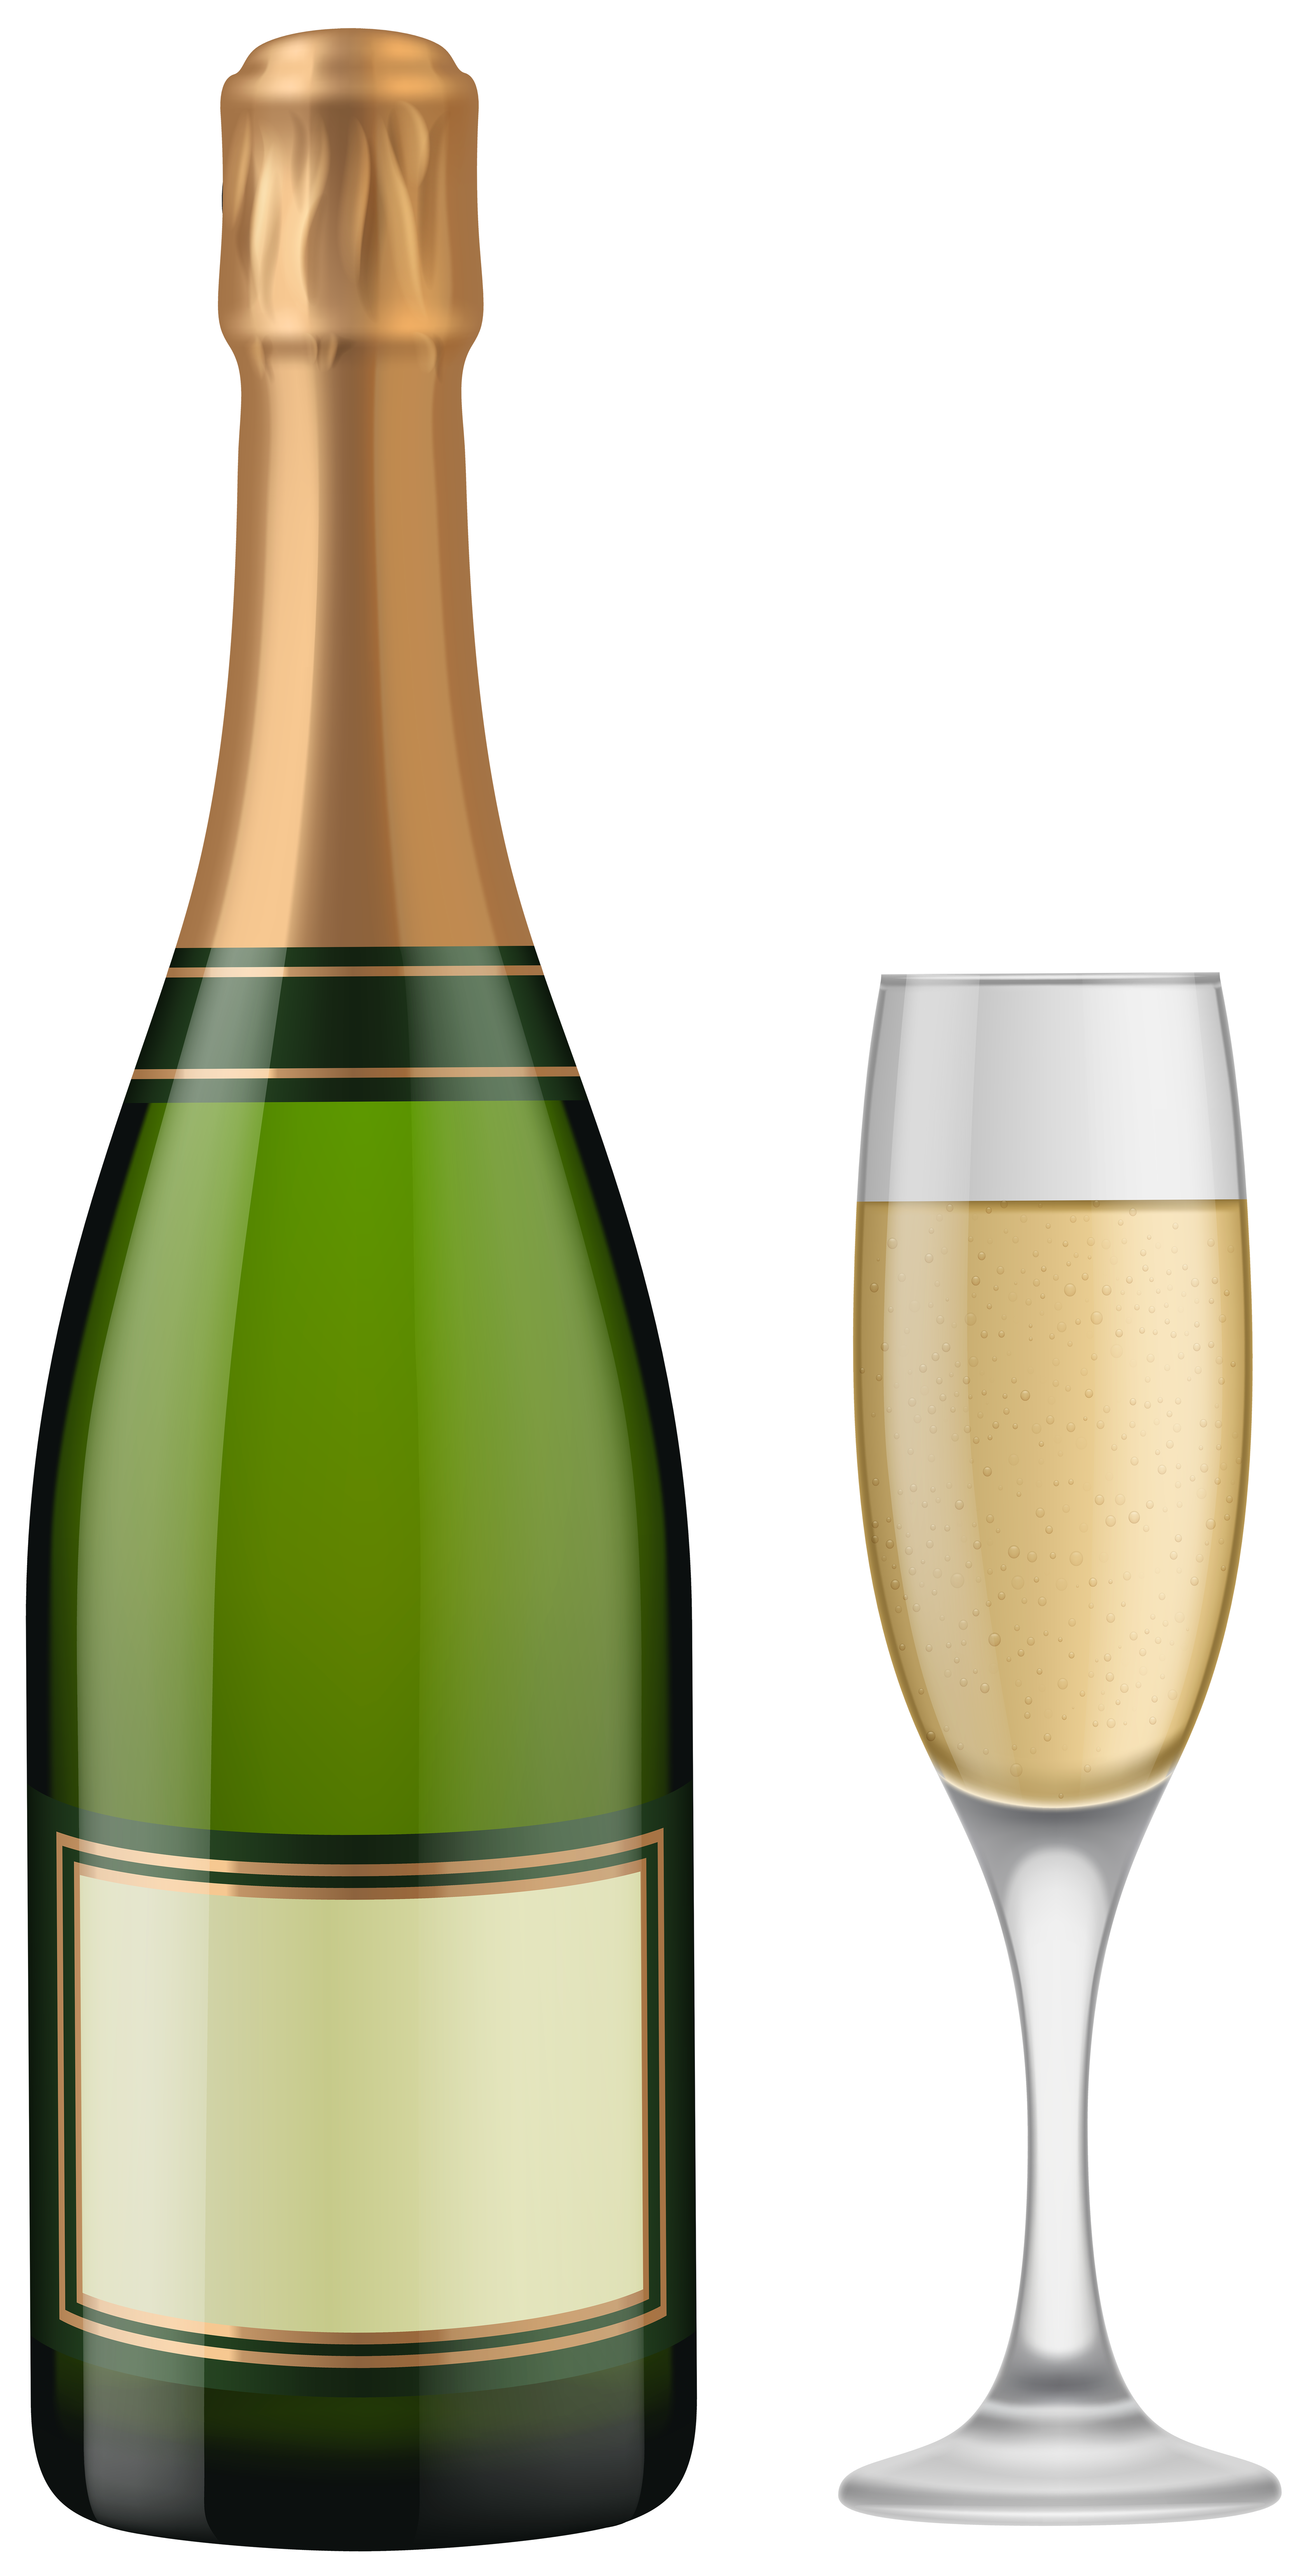 Champaign clipart liquor bottle. Champagne and glass png